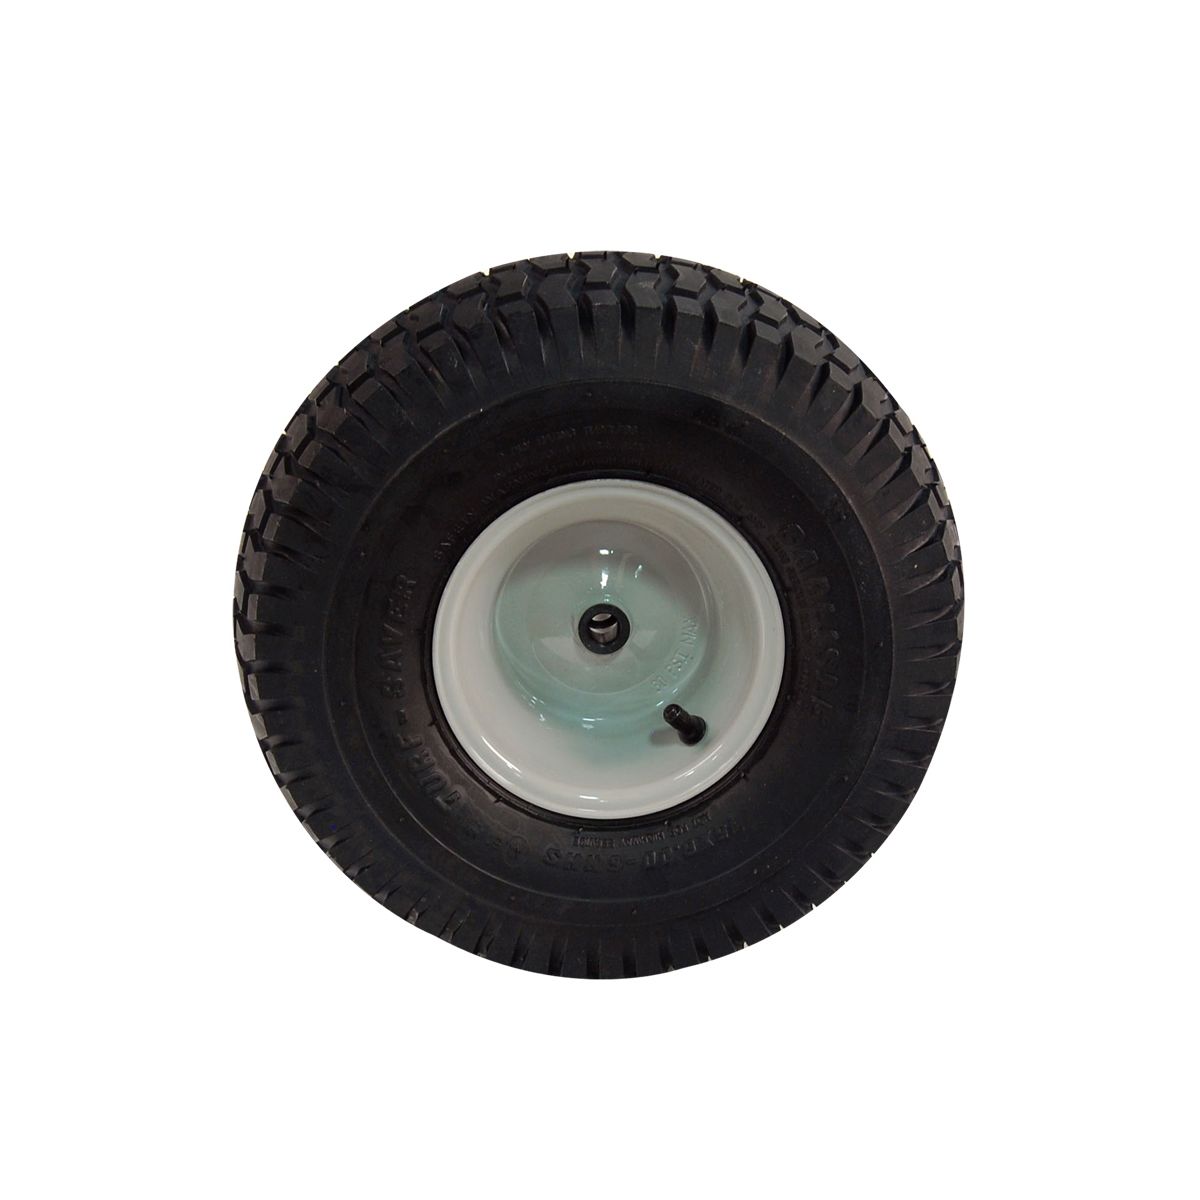 complete wheel assembly carlisle tire with gray rim 634-0105b-0911